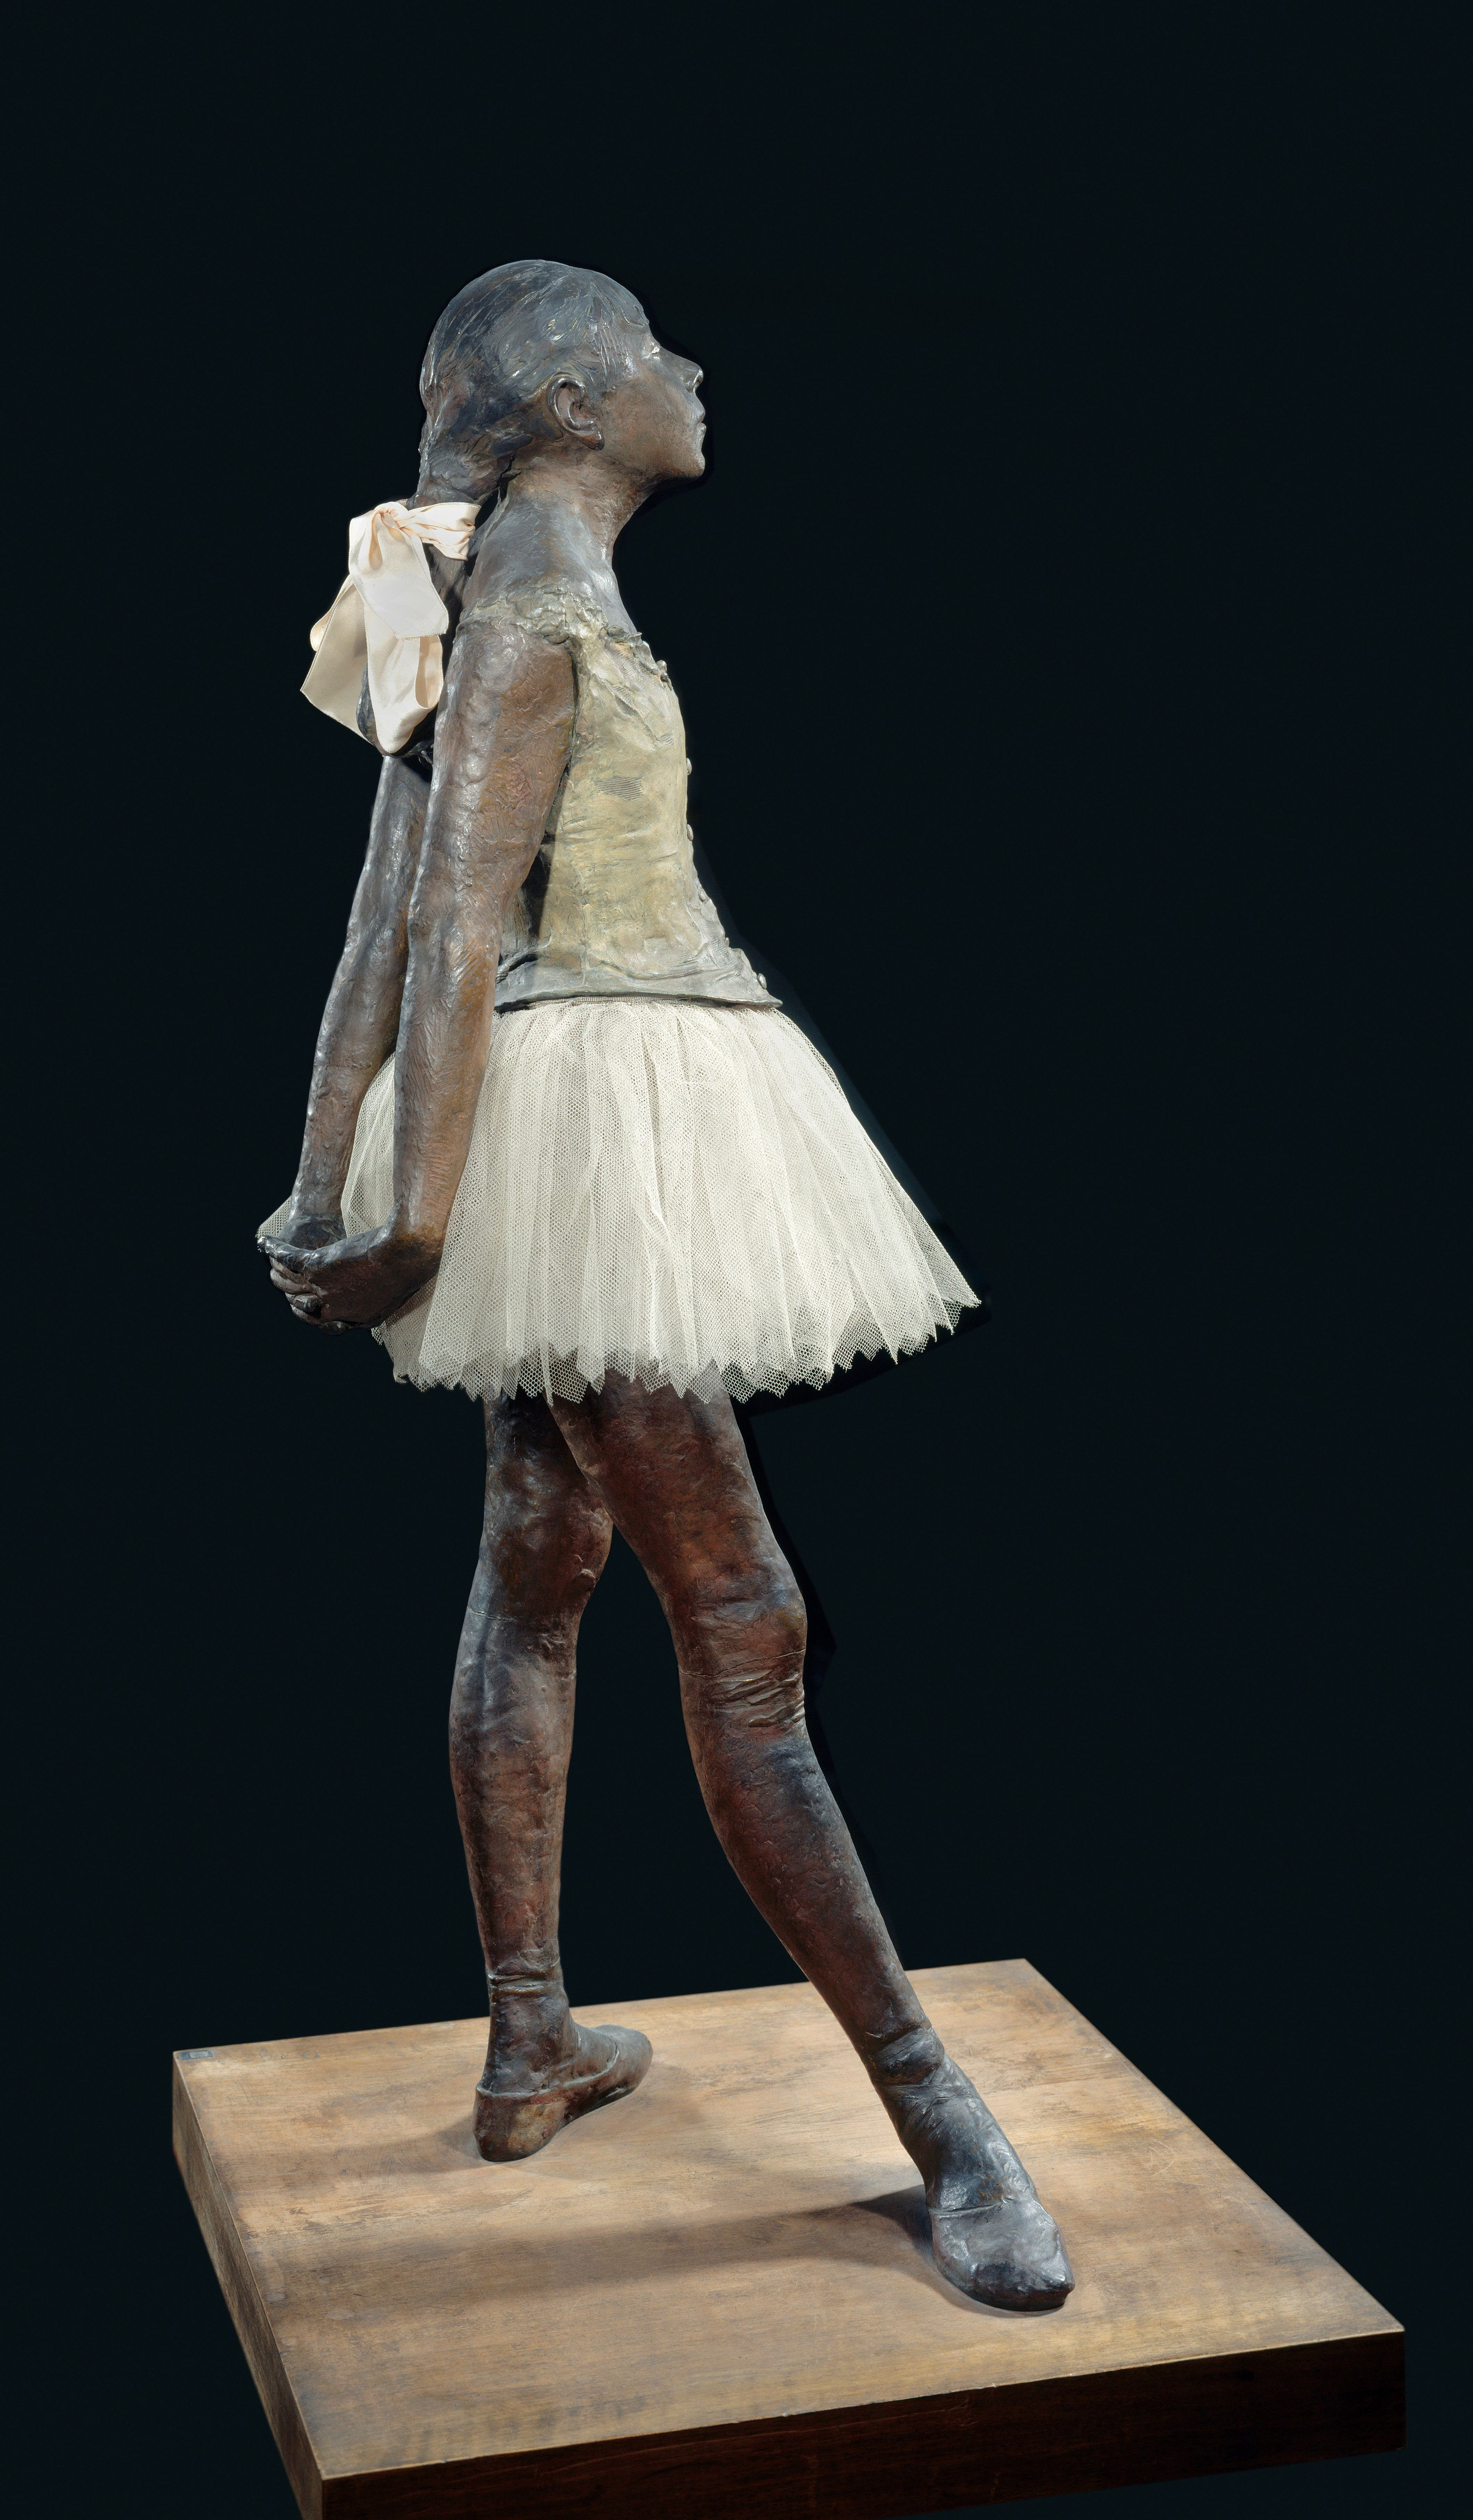 The Story Of Degas' 'Little Dancer' Is Disturbing, But Not In The Way You